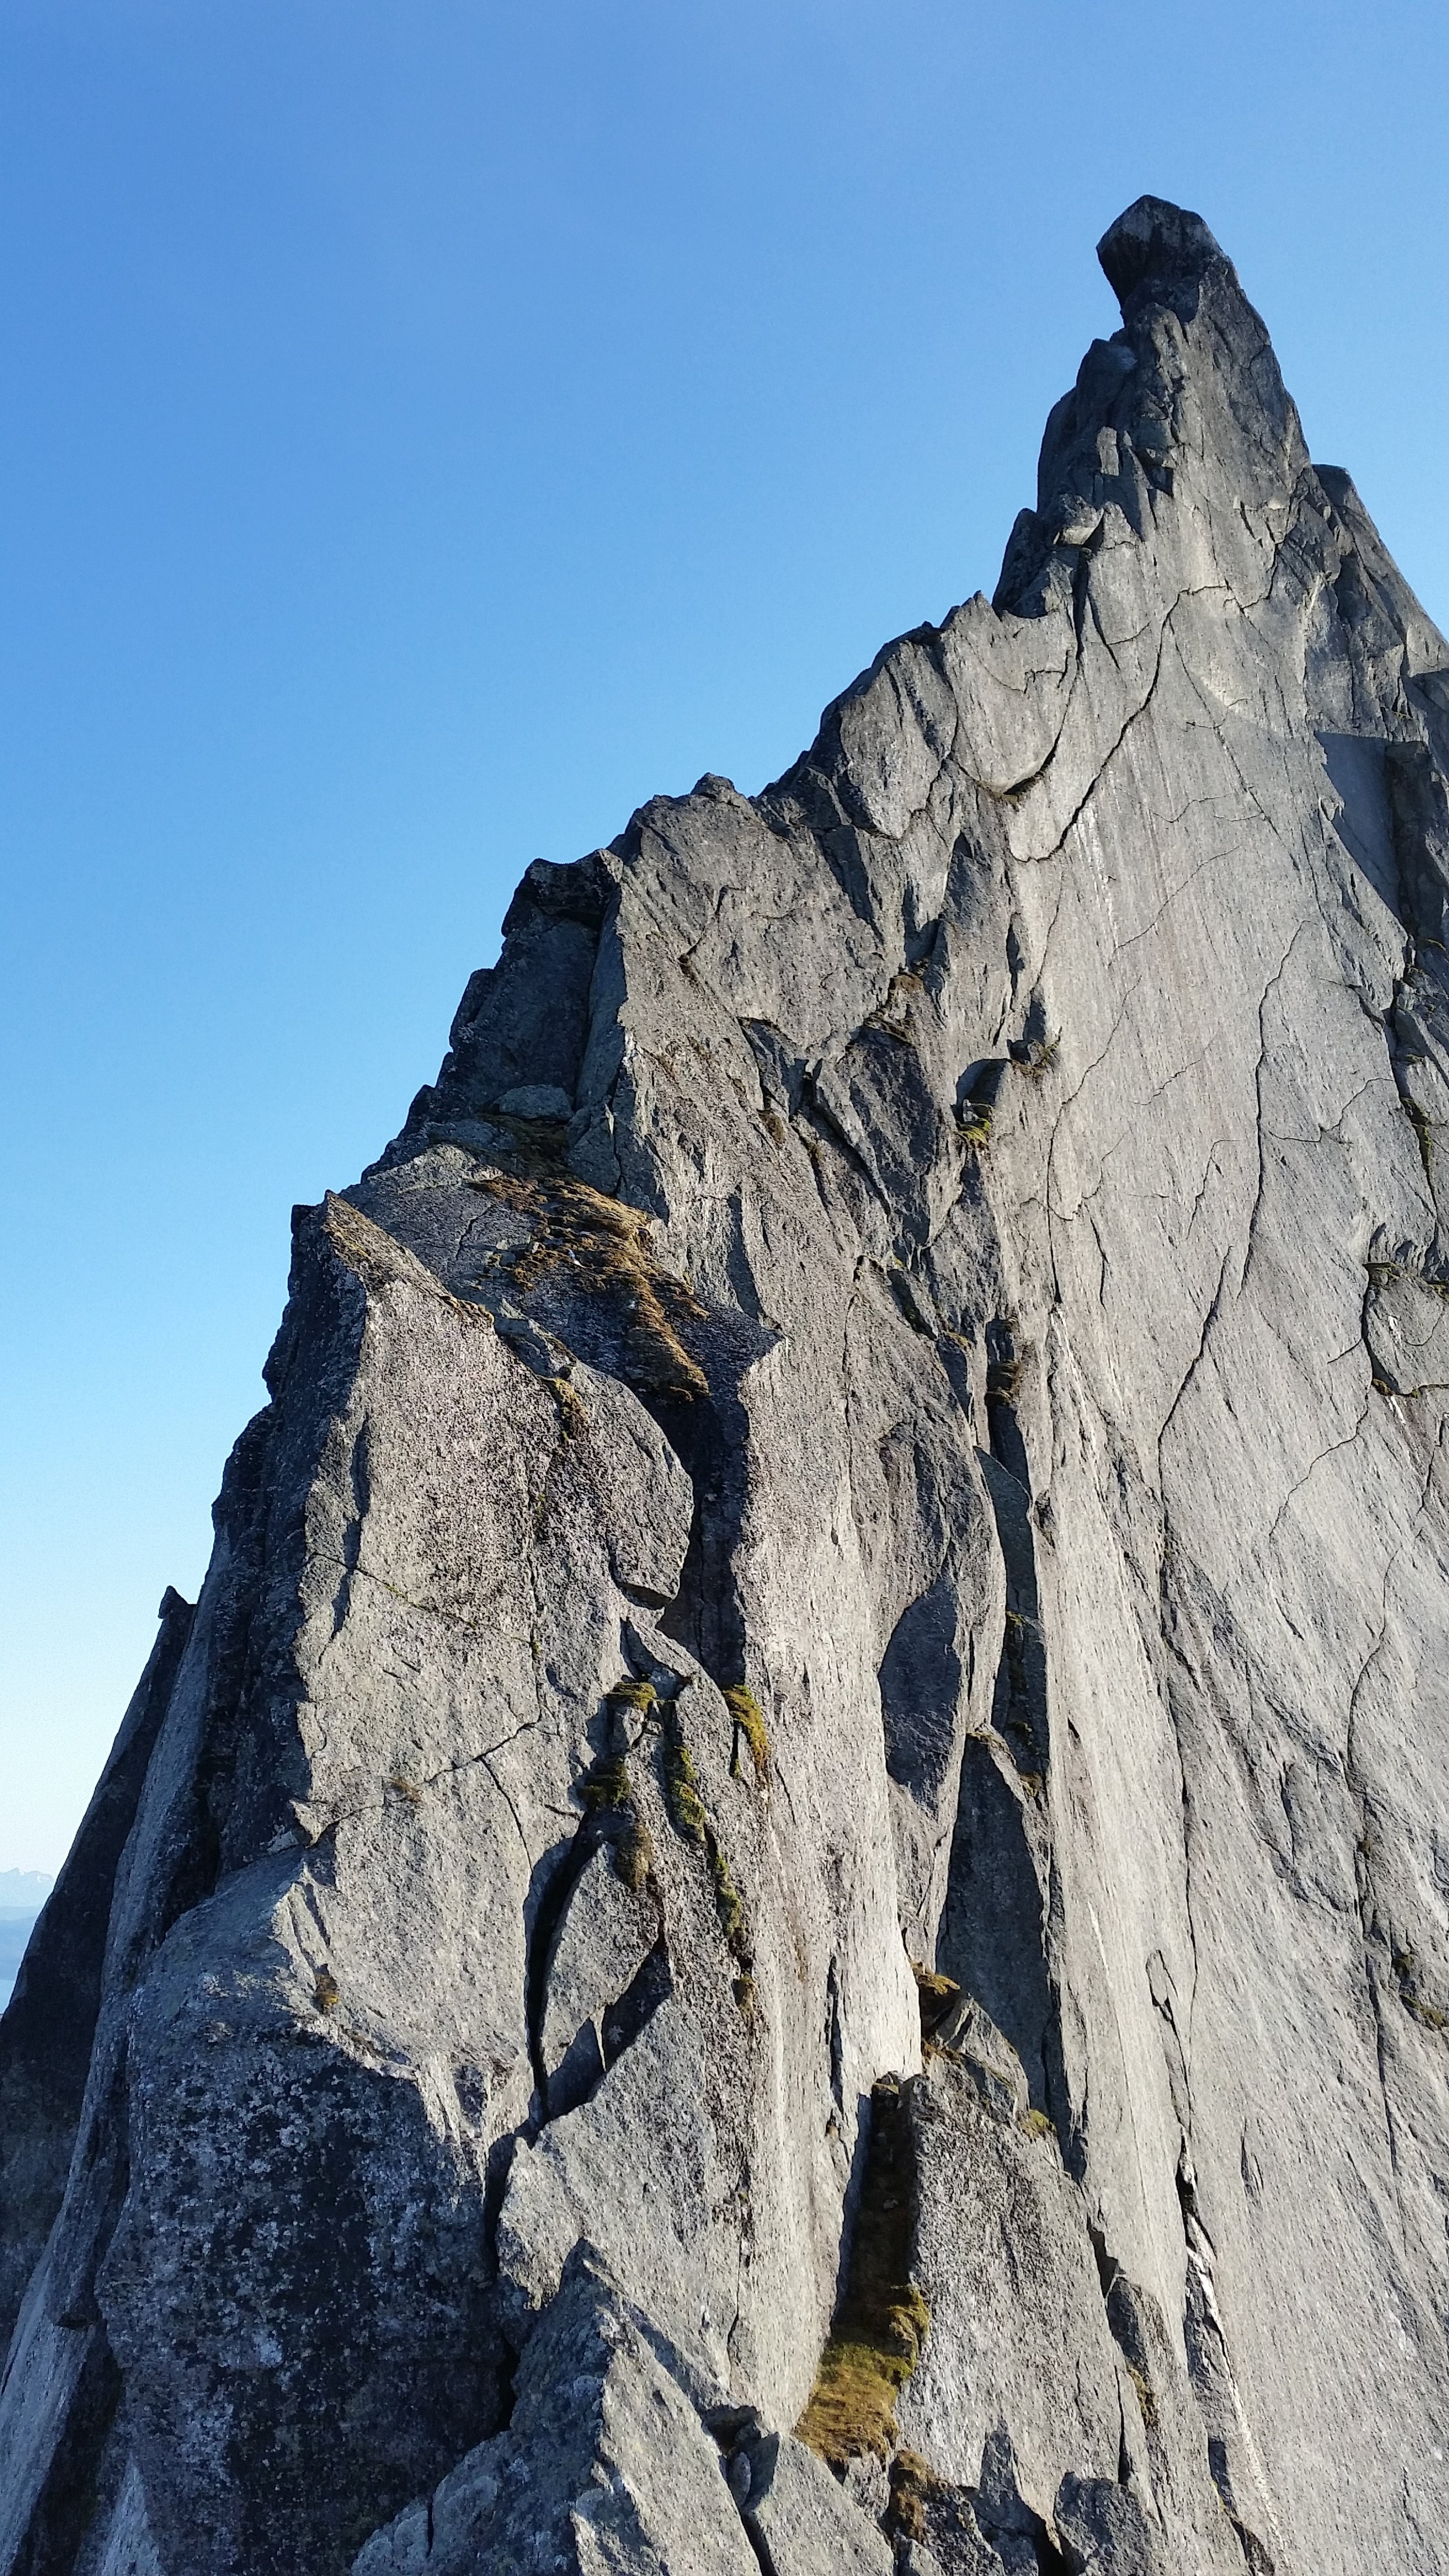 East Ridge of the Kuglehorn, one of Tysfjords many great moderate climbs